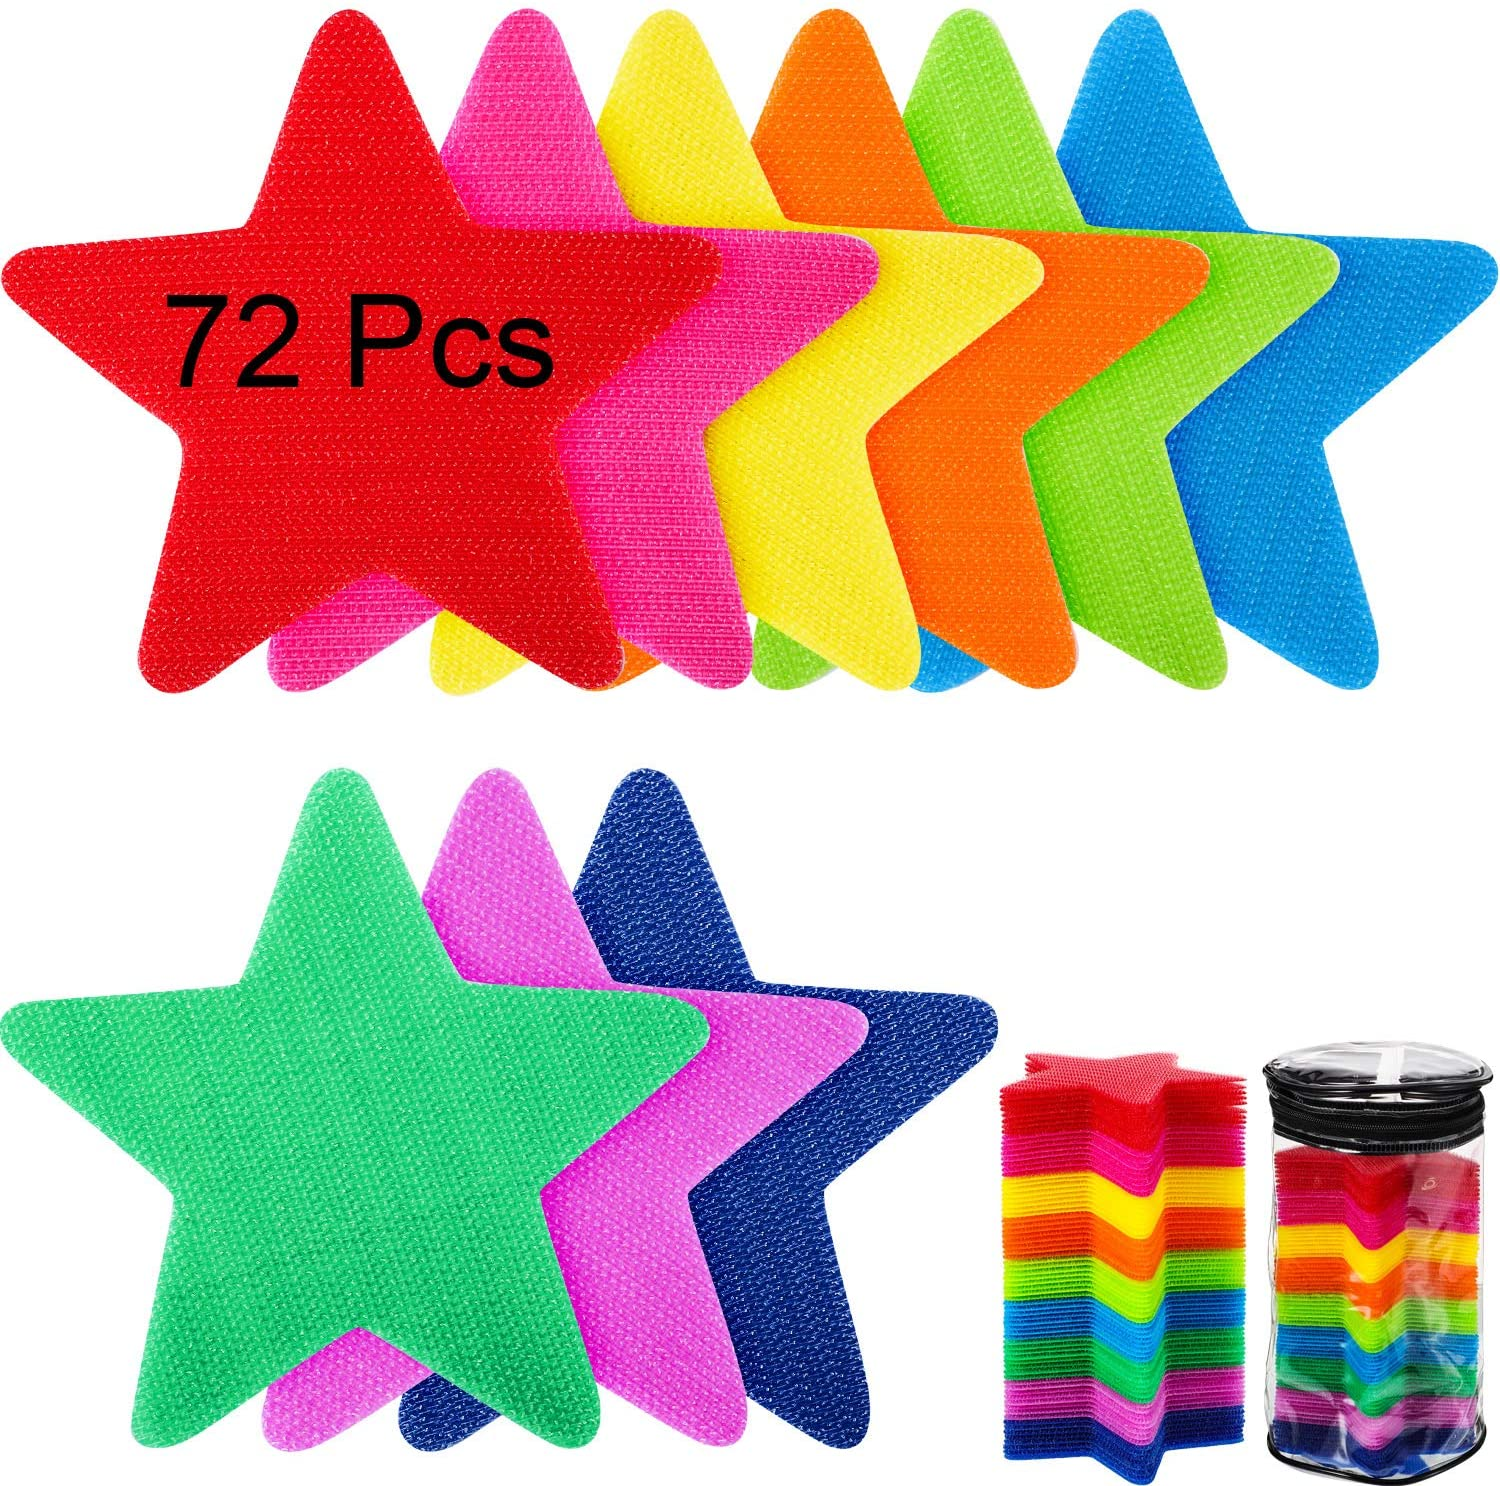 WILLBOND 72 Pieces Star Shape Carpet Spot Markers 4 Inch Carpet Spot Sit Markers Floor Markers with 9 Color Classroom Spot Markers for Preschool, Kindergarten and Sport